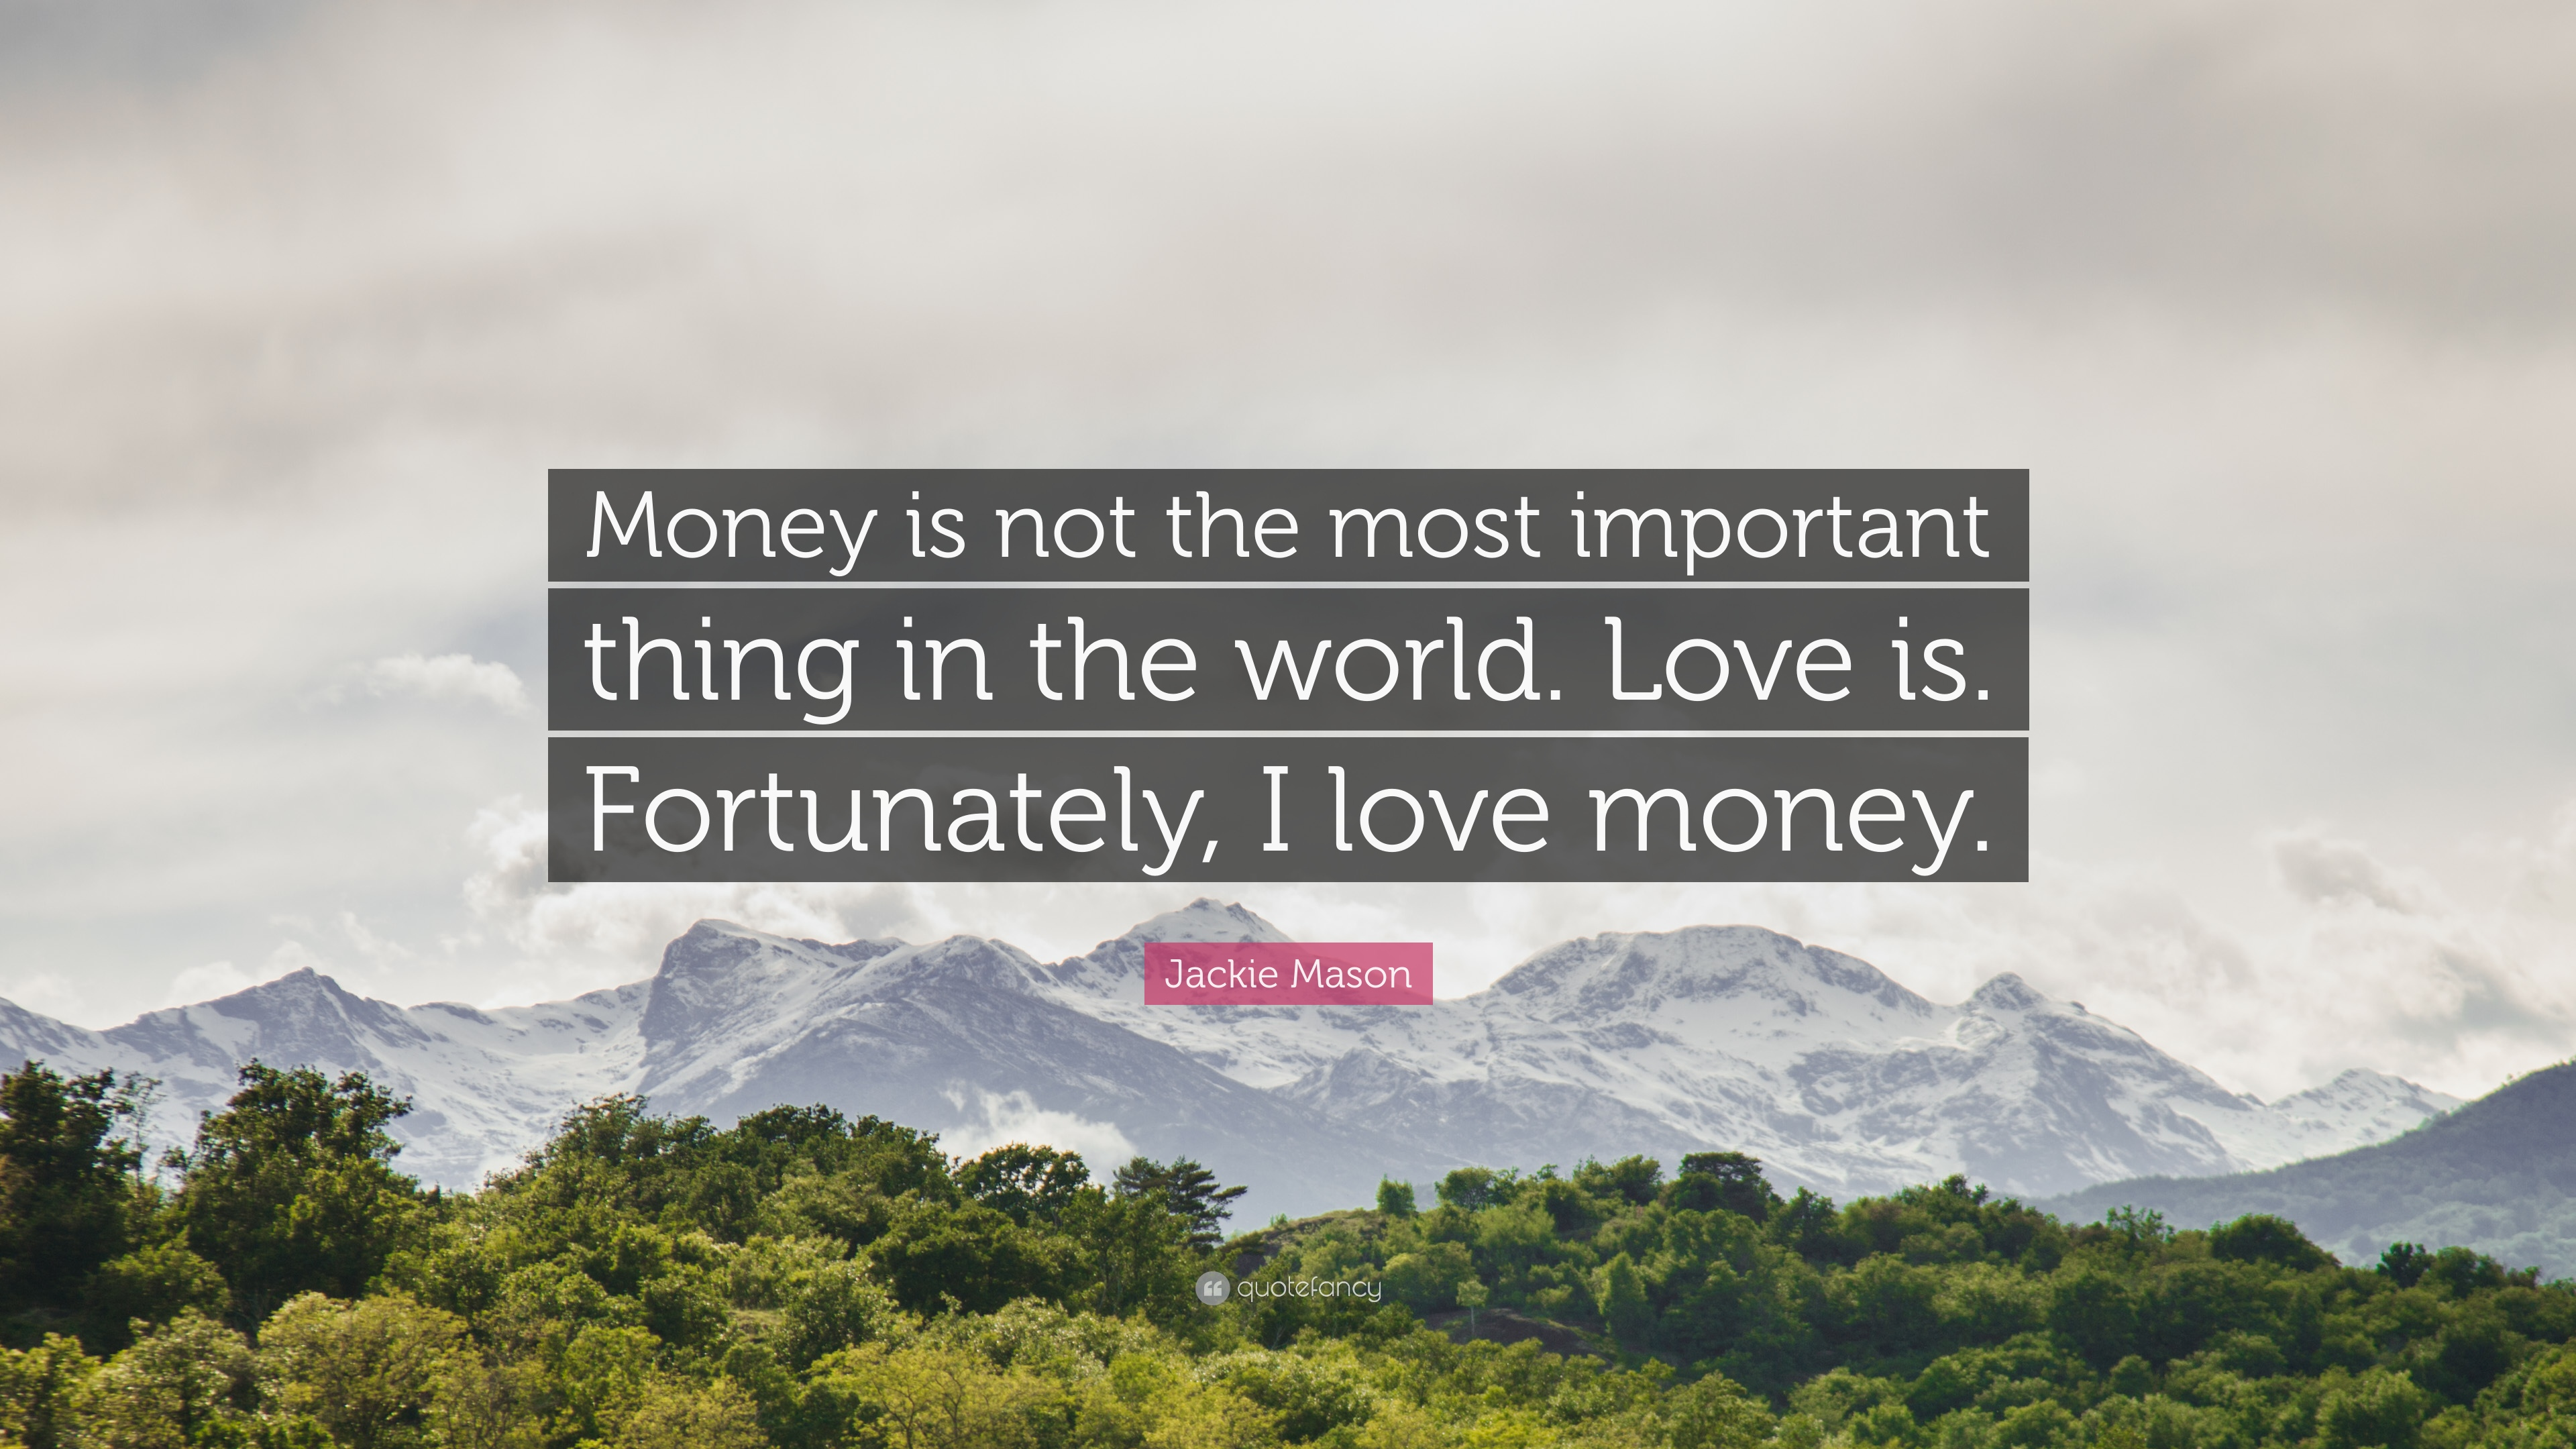 Money Is Not The Most Important Thing!